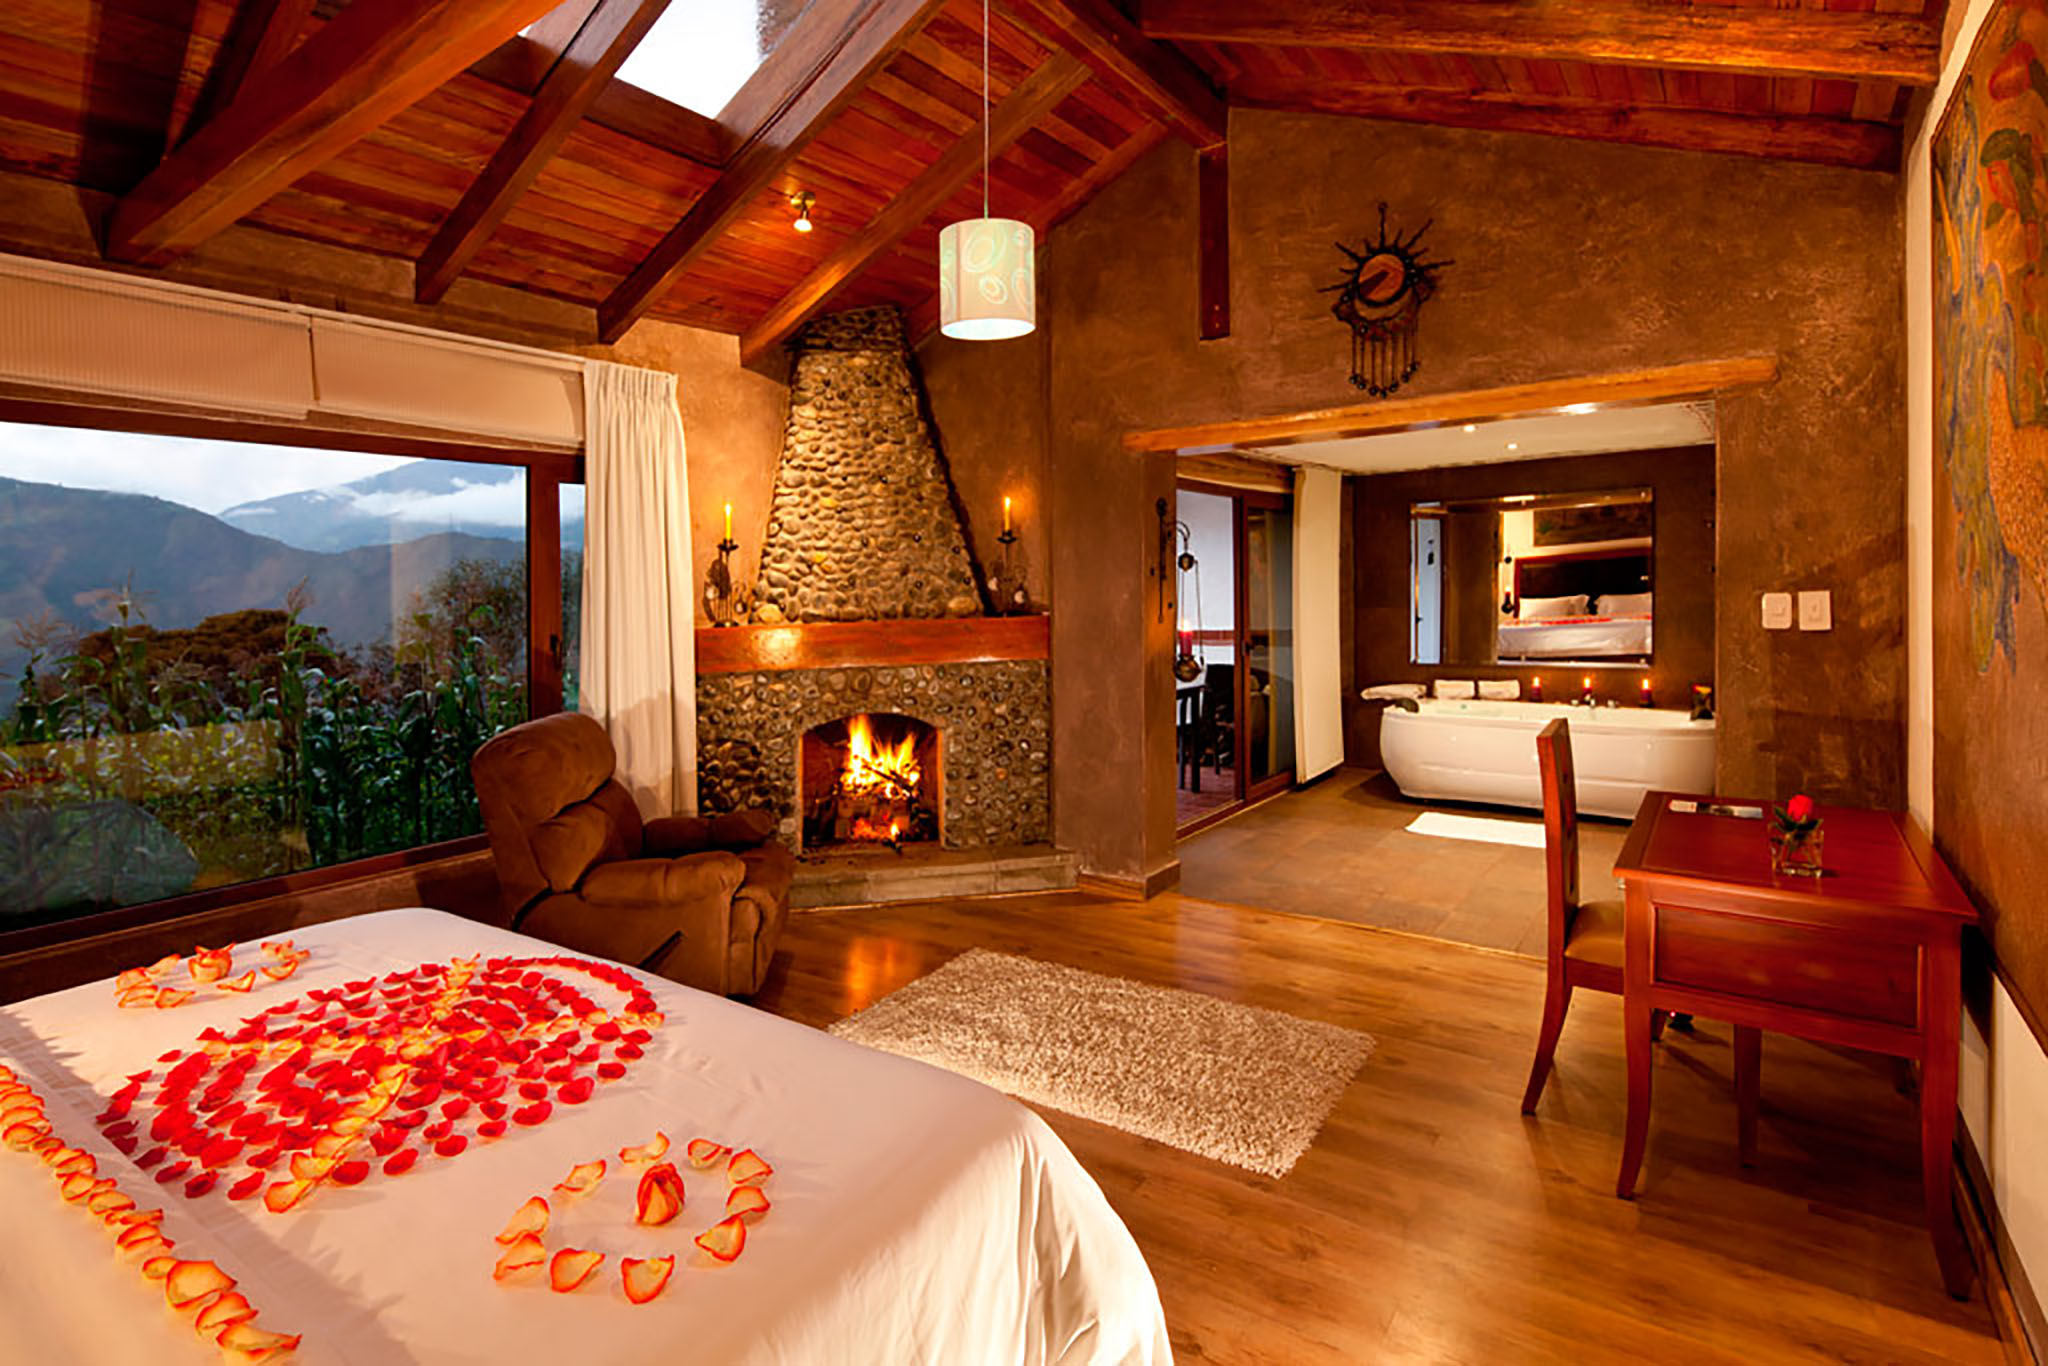 HONEYMOON OR ANNIVERSARY (3d / 2n) - The natural environment, the location, the spectacular views, the 25 adventure activities; the beautiful suites, the best SPA in the region and Luna Volcán facilities are ideal for this special moment.